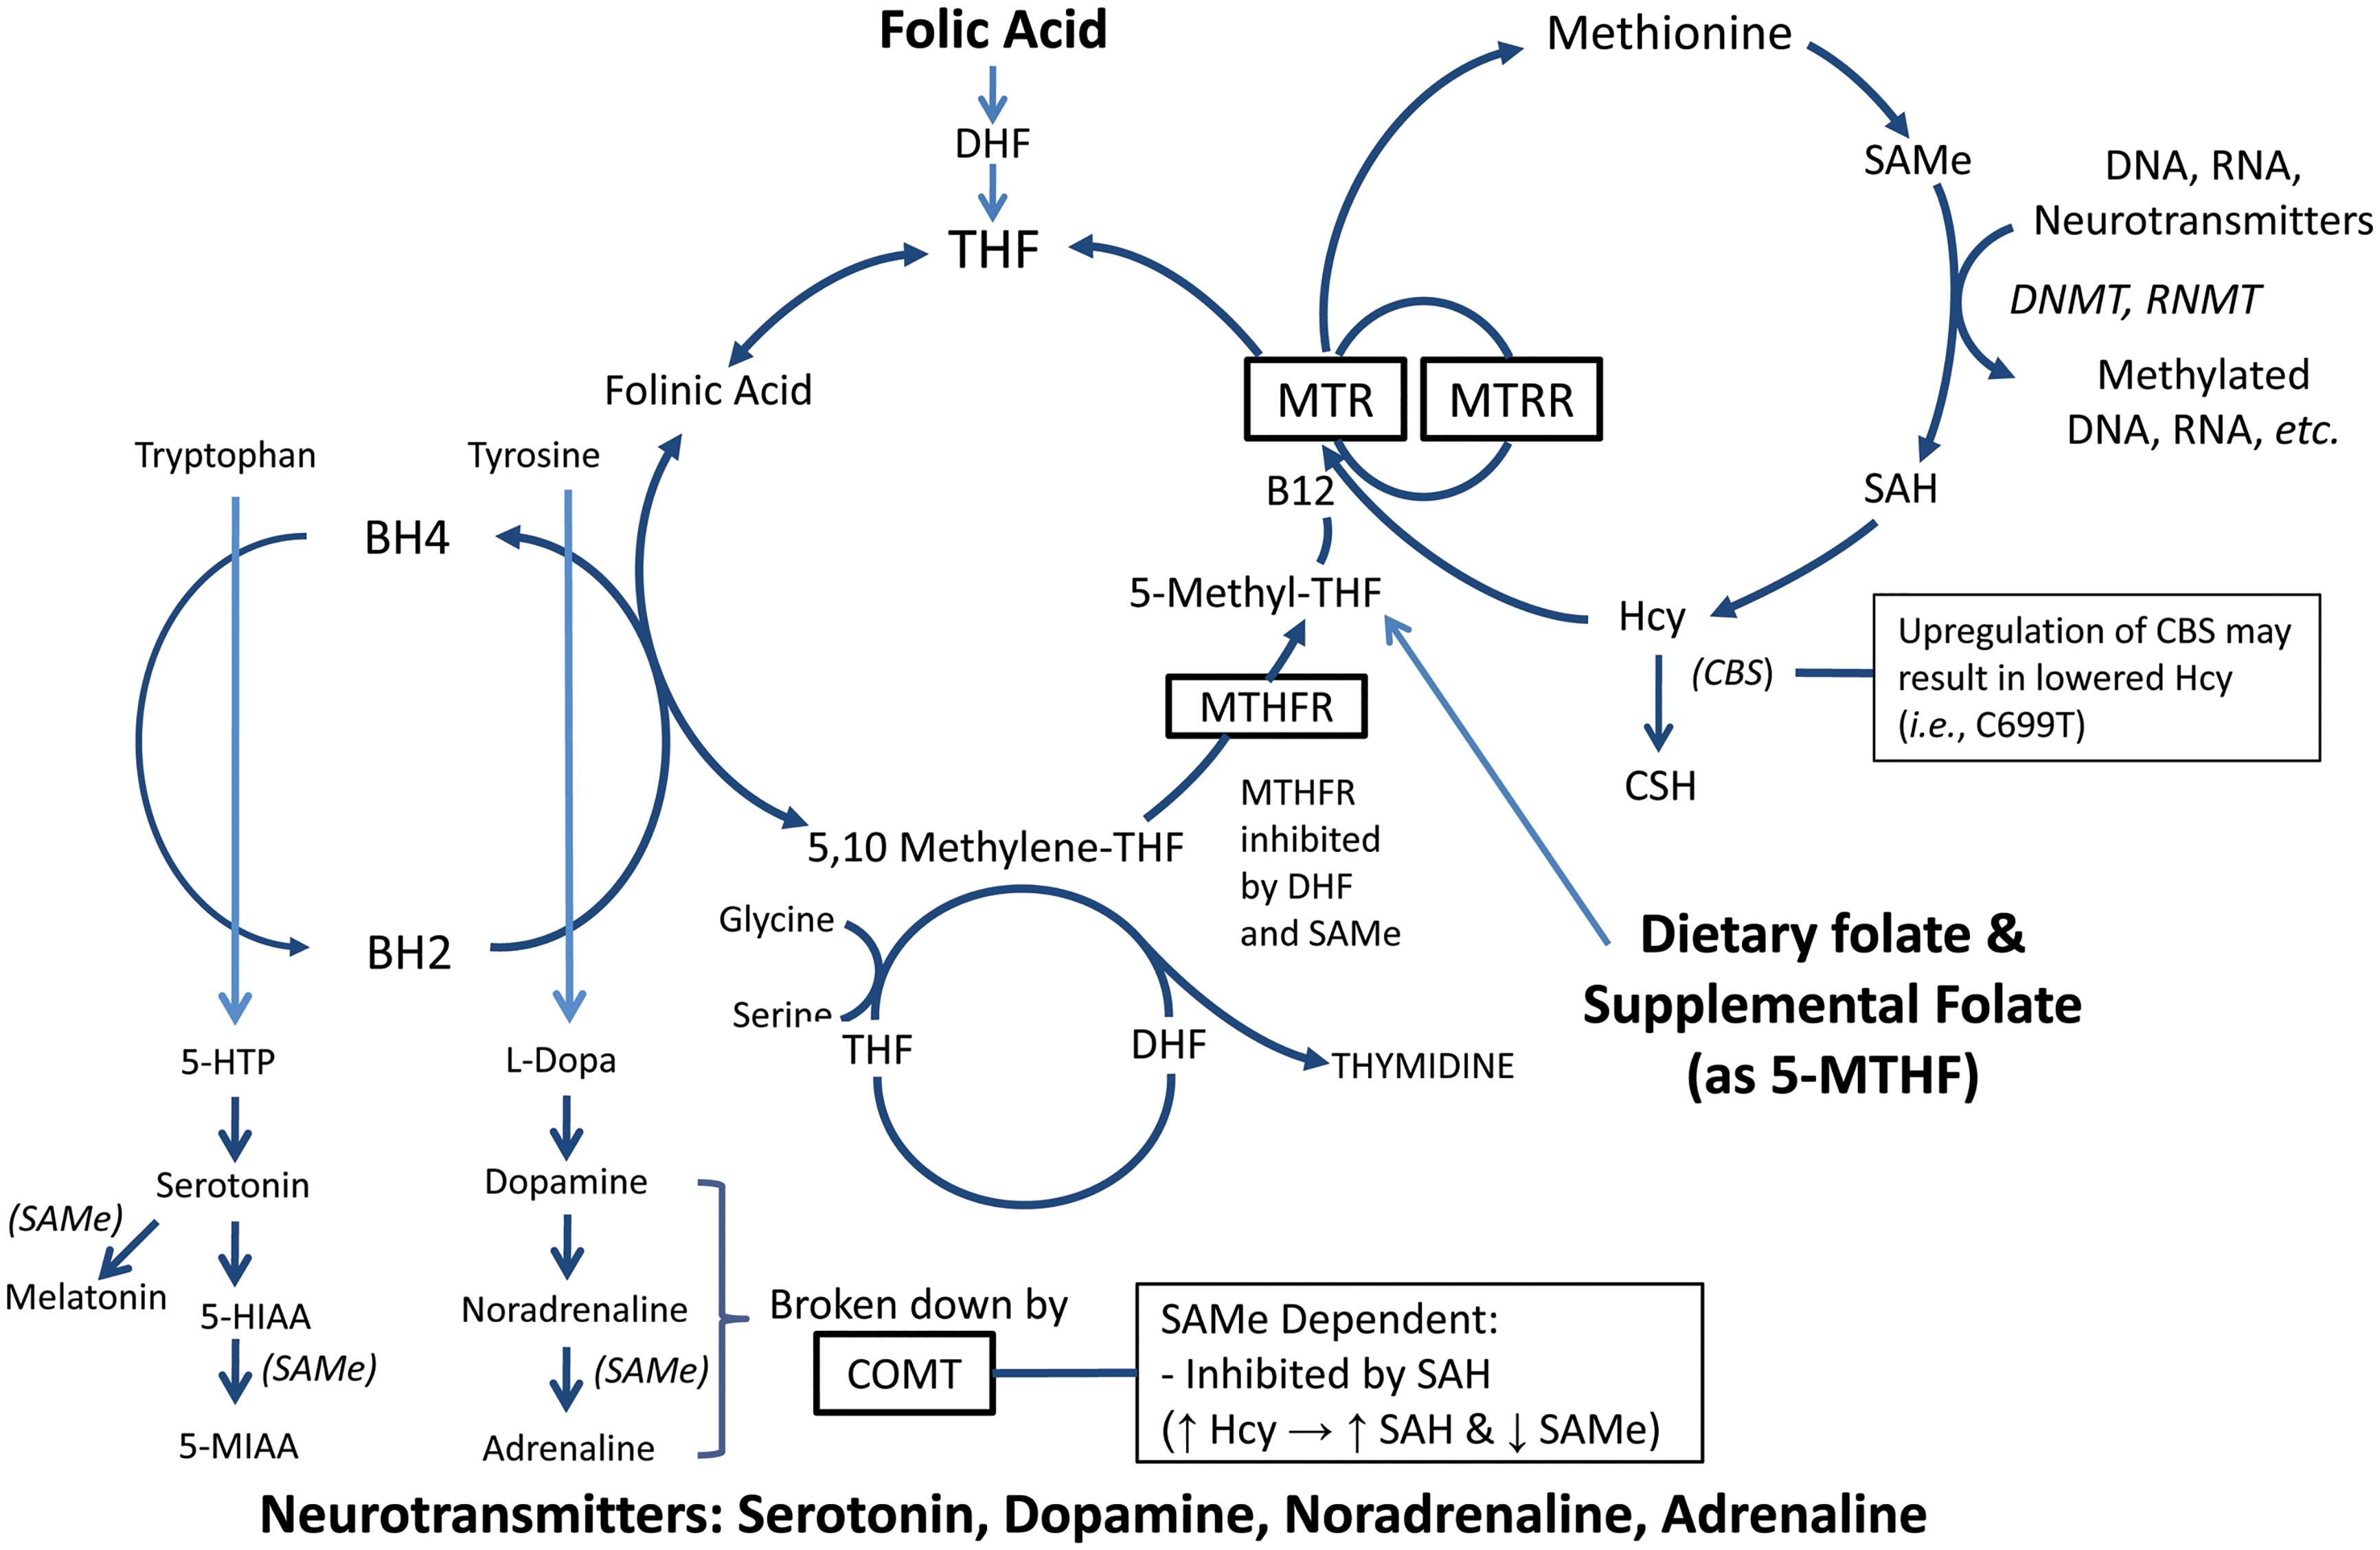 Relationship between folate, methylation and neurotransmitters involved with depression.